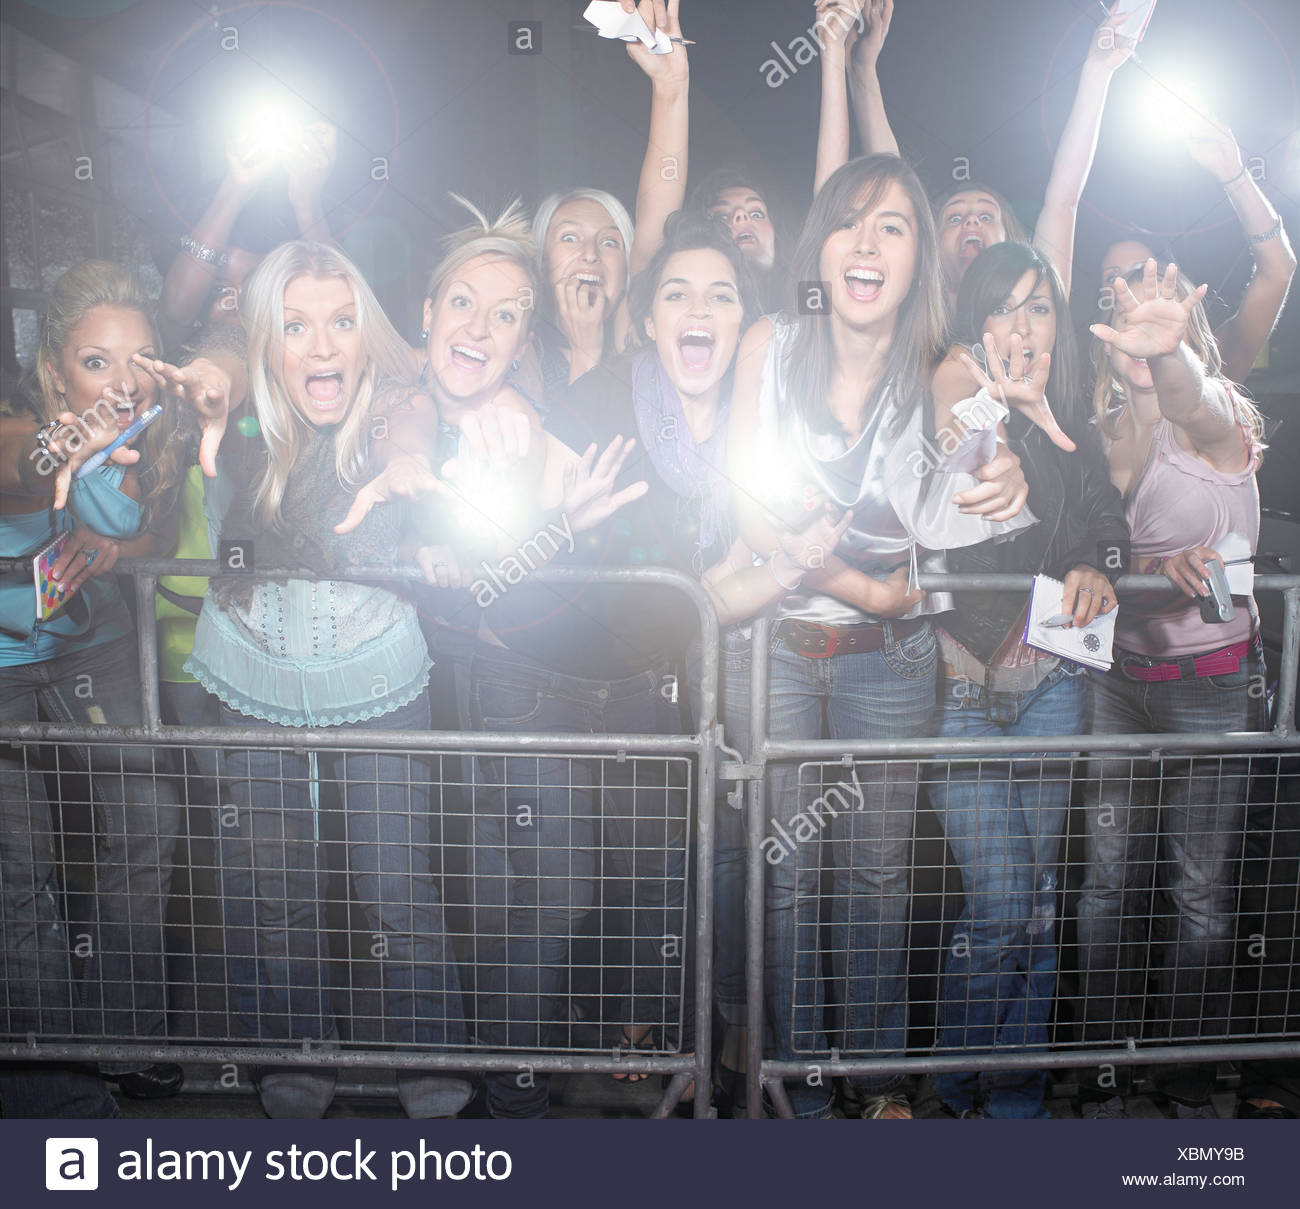 Crowd of young female fans screaming cheering t concert - Stock Image